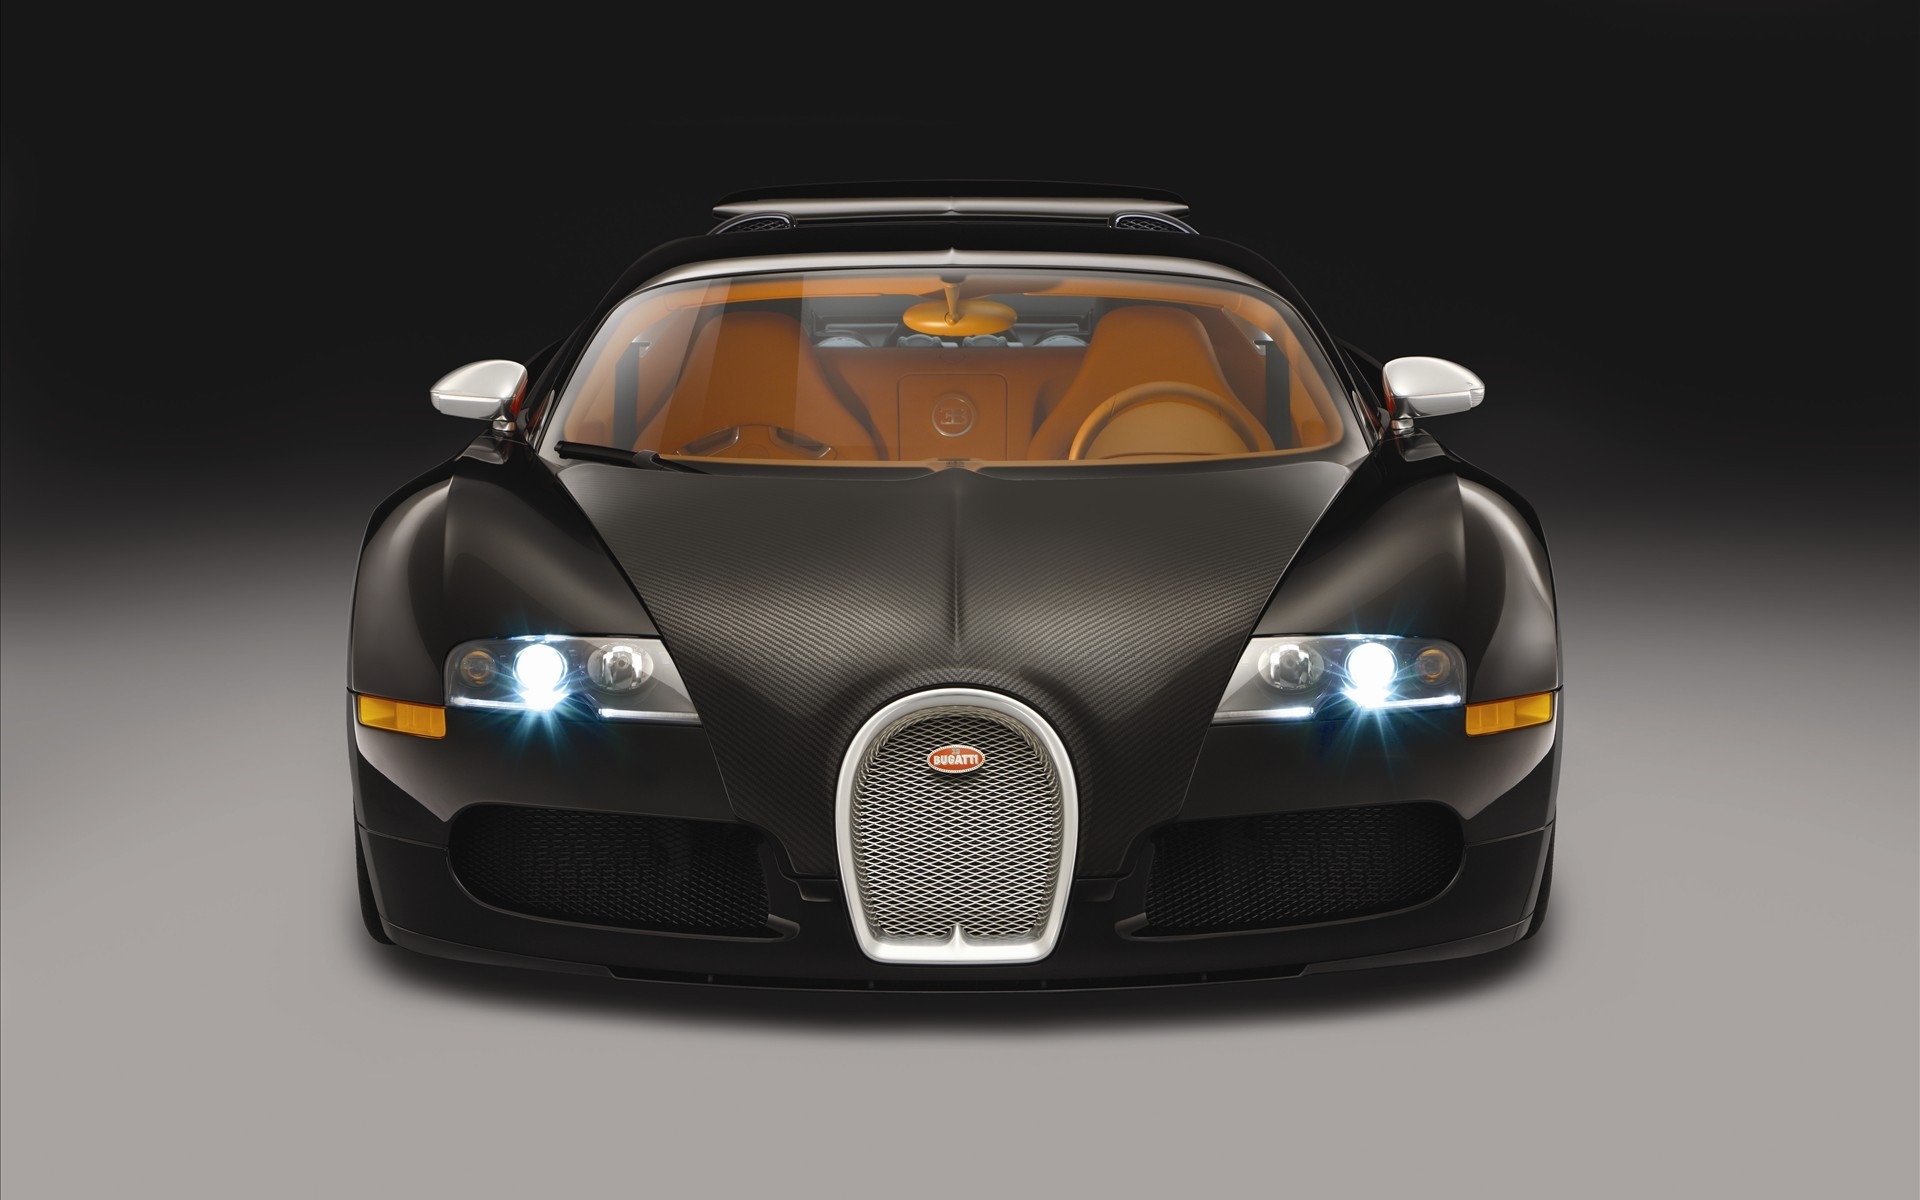 veyron front view wallpapers veyron front view stock photos. Black Bedroom Furniture Sets. Home Design Ideas